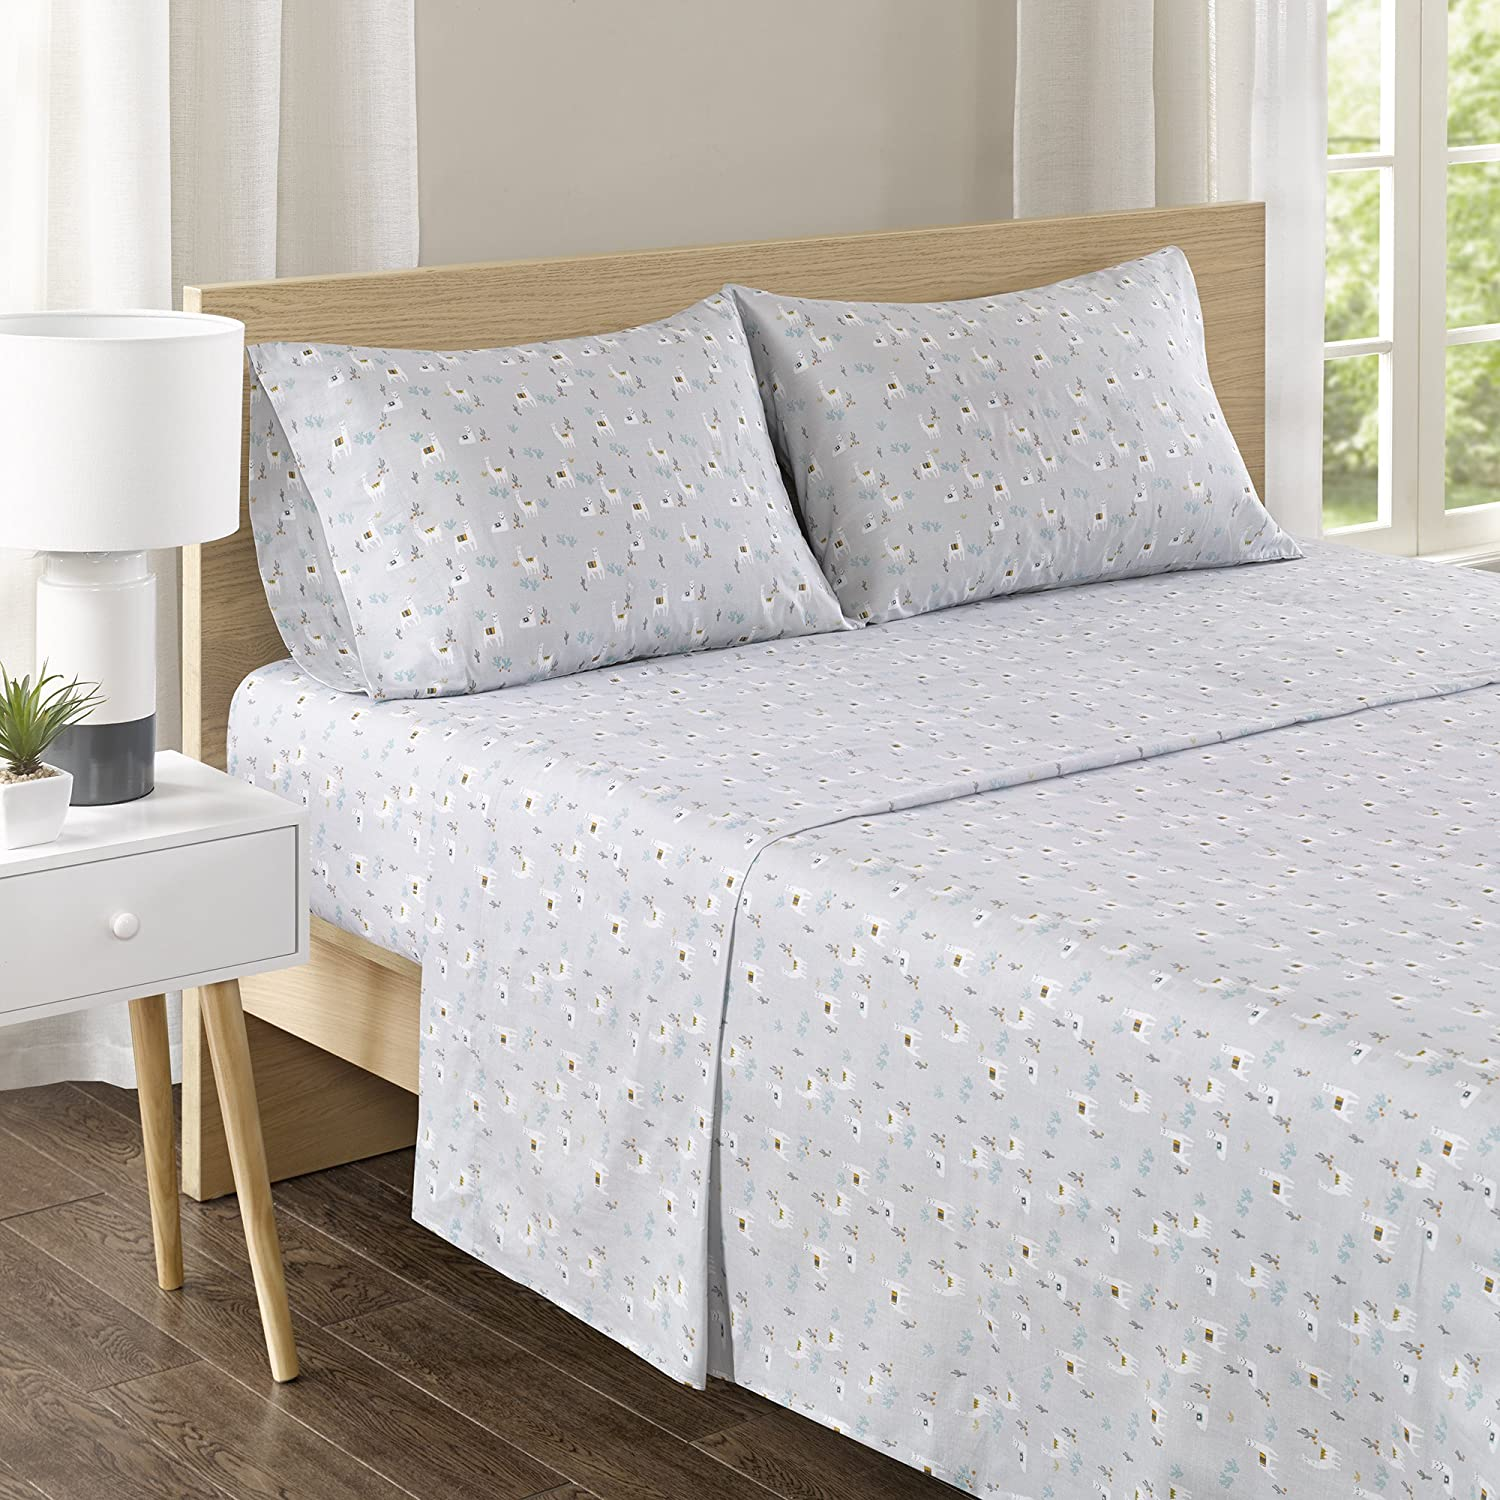 Comfort Spaces 100% Cotton Percale 4 Piece Set Ultra Soft Breathable Bed Sheet